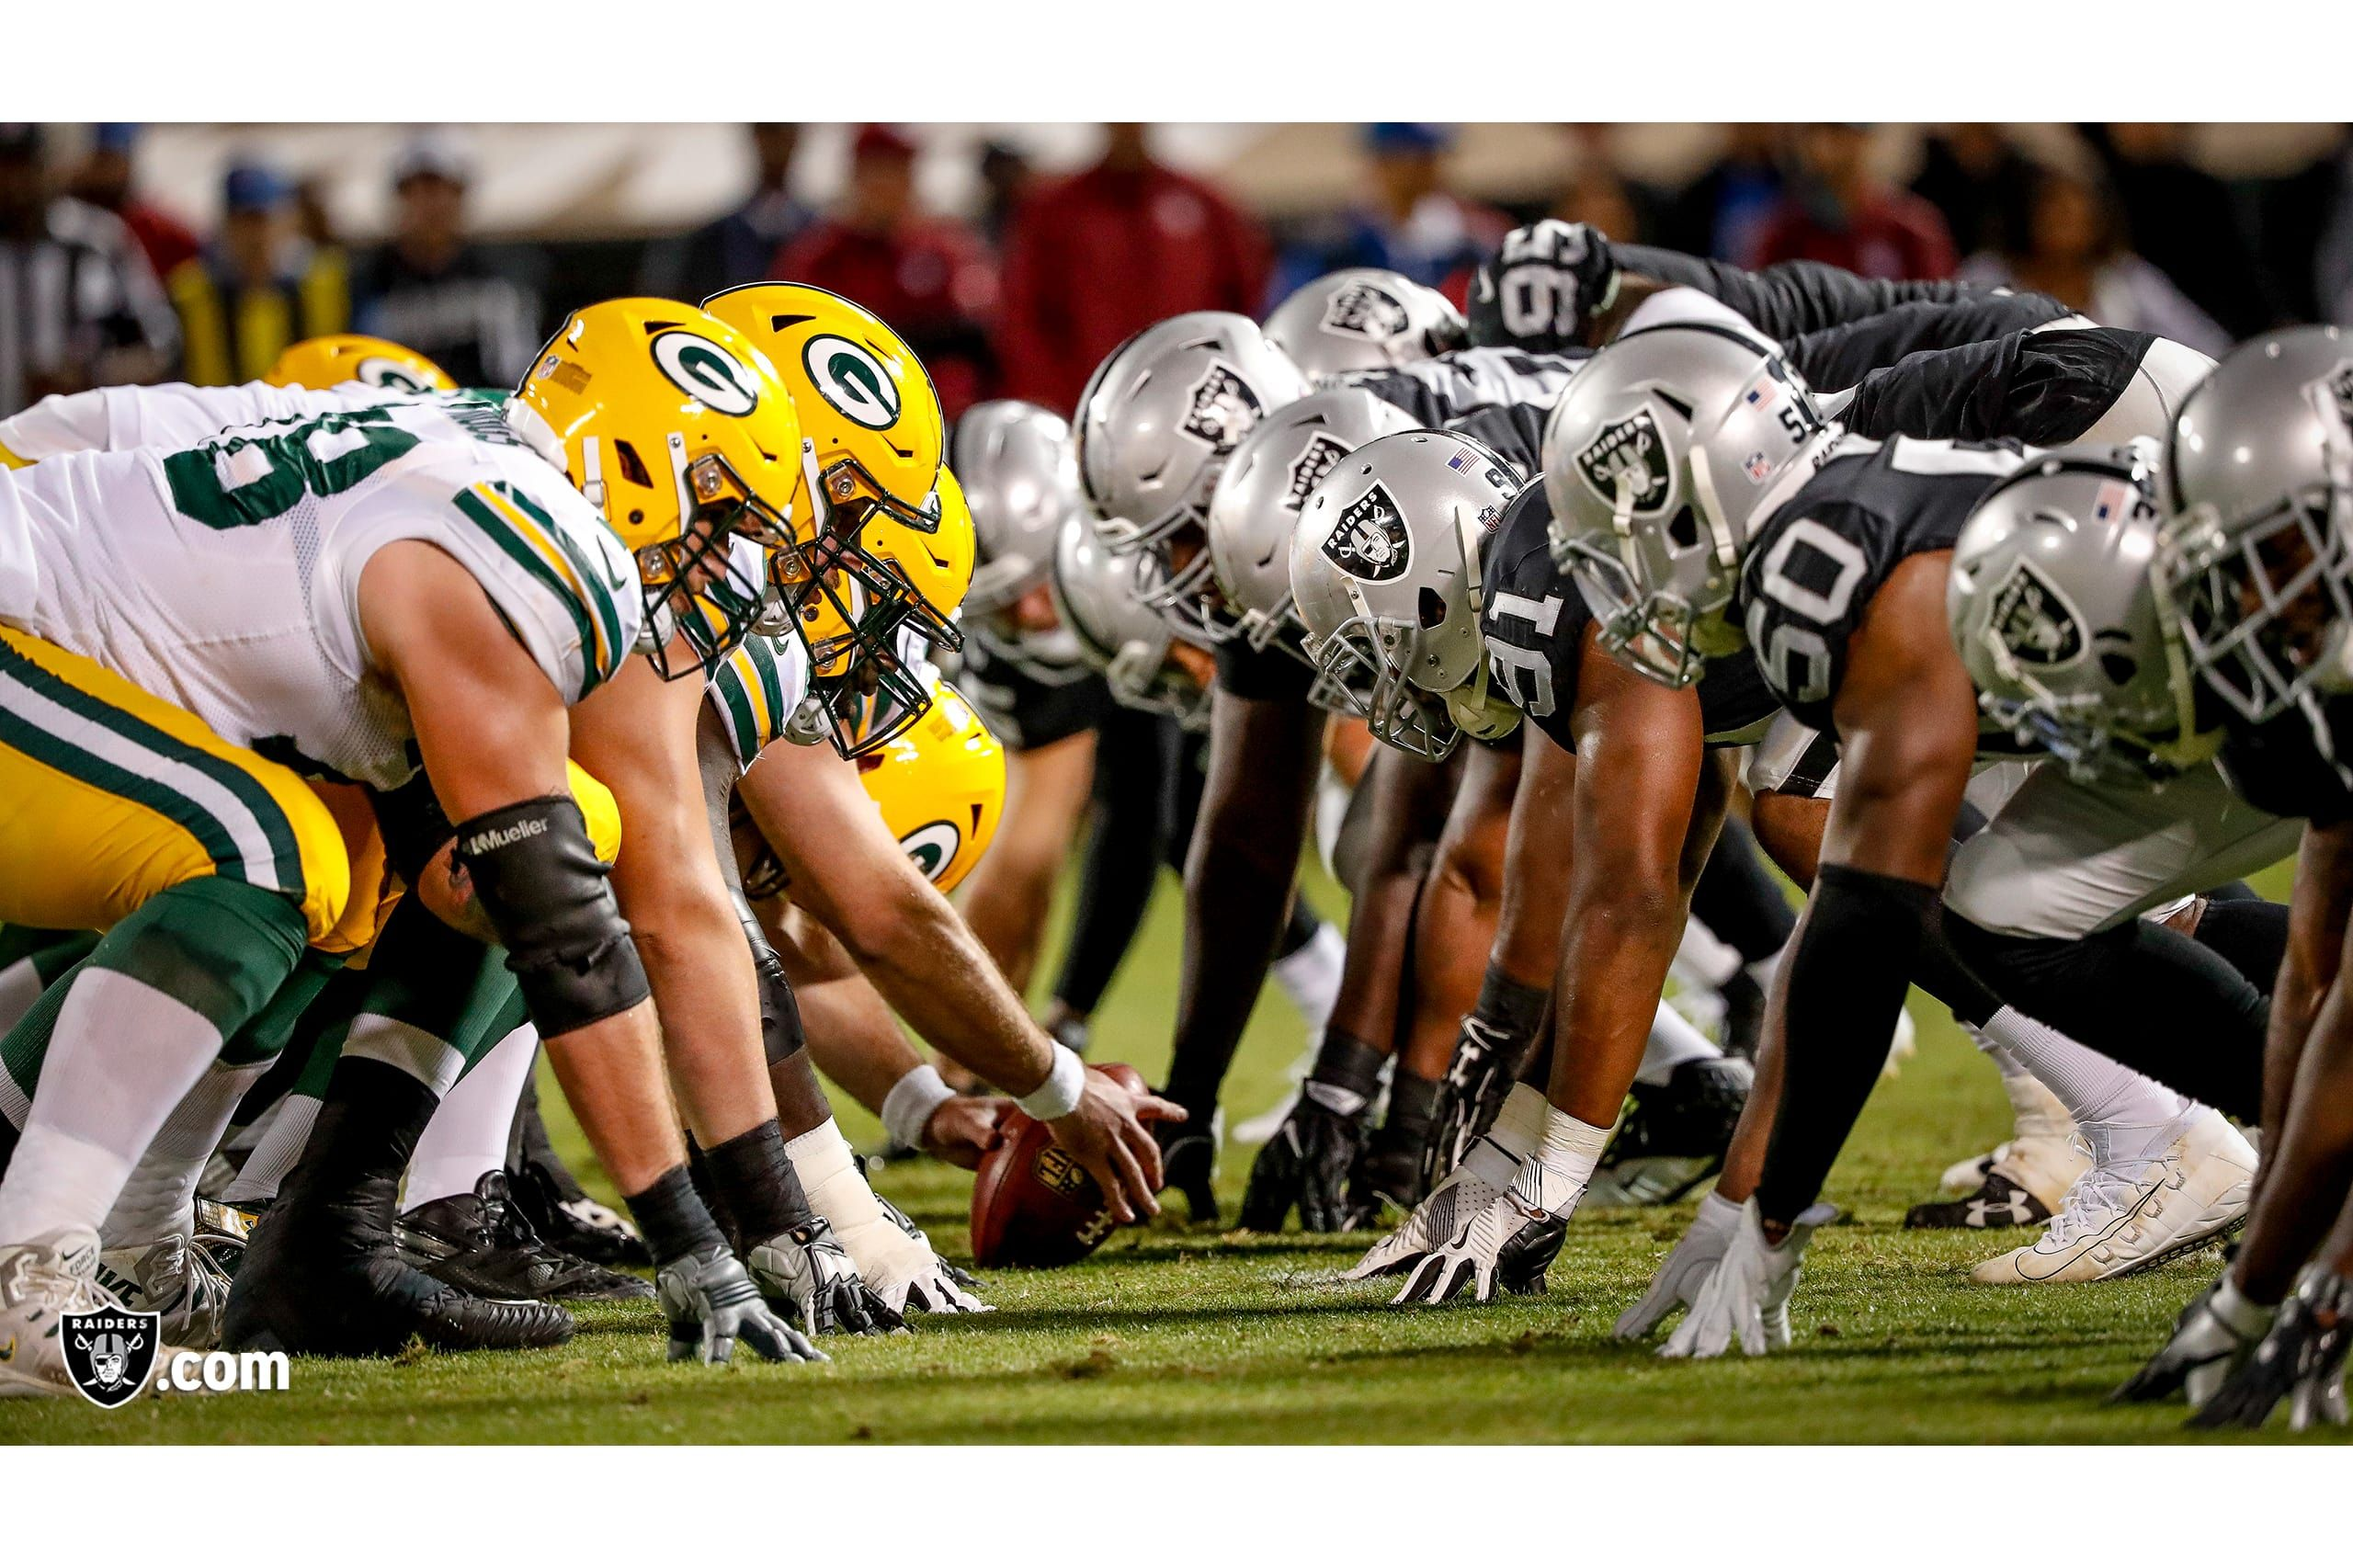 The Oakland Raiders Defensive Line During The Oakland Raiders Preseason Game Against The Green Bay Packers At Oakland Raiders Vs Raiders Vs Packers Raiders Win